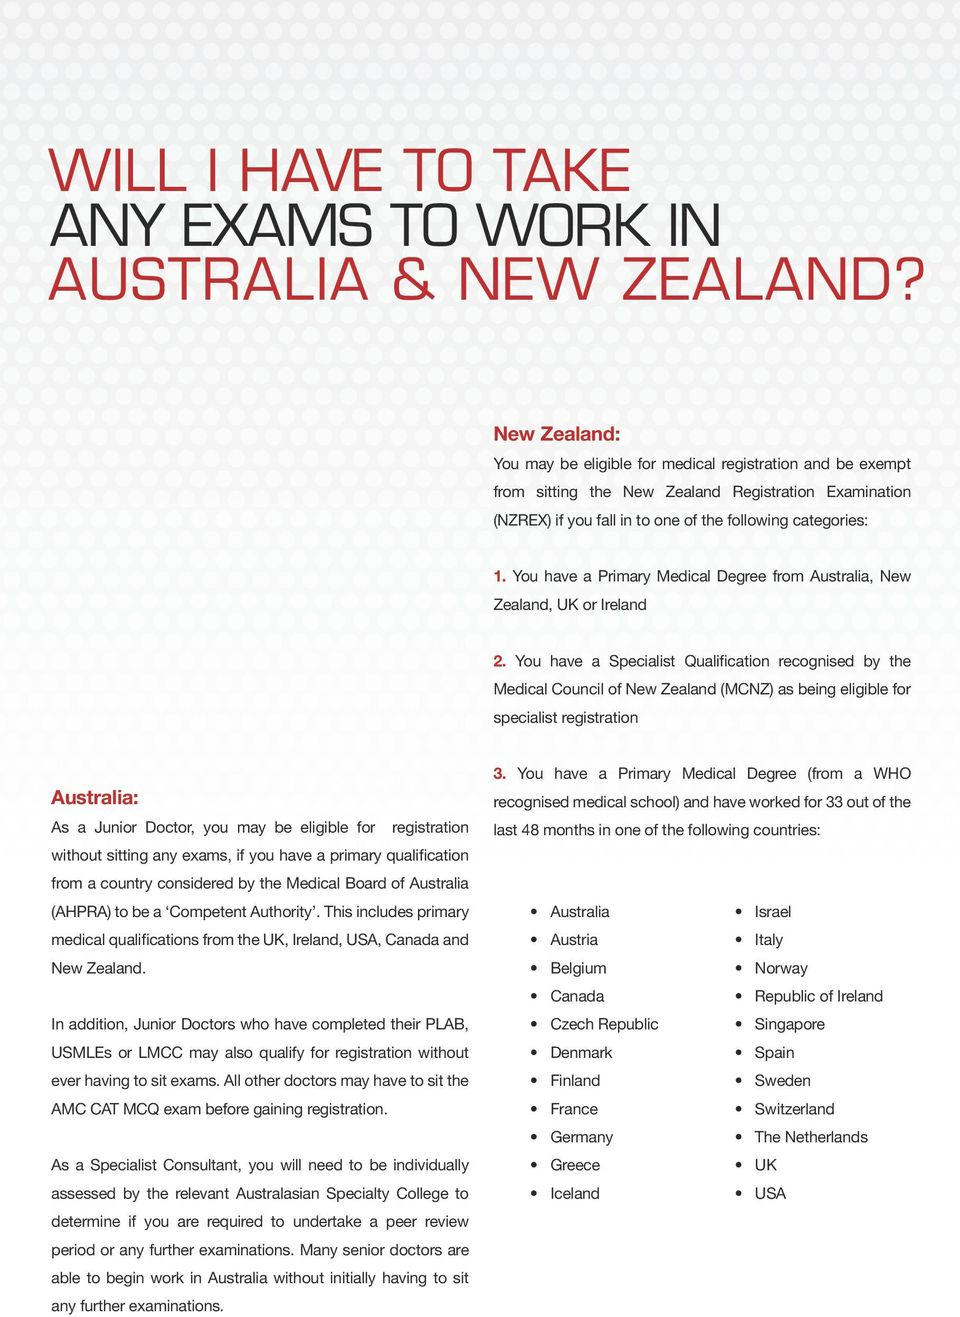 You have a Primary Medical Degree from Australia, New Zealand, UK or Ireland 2.